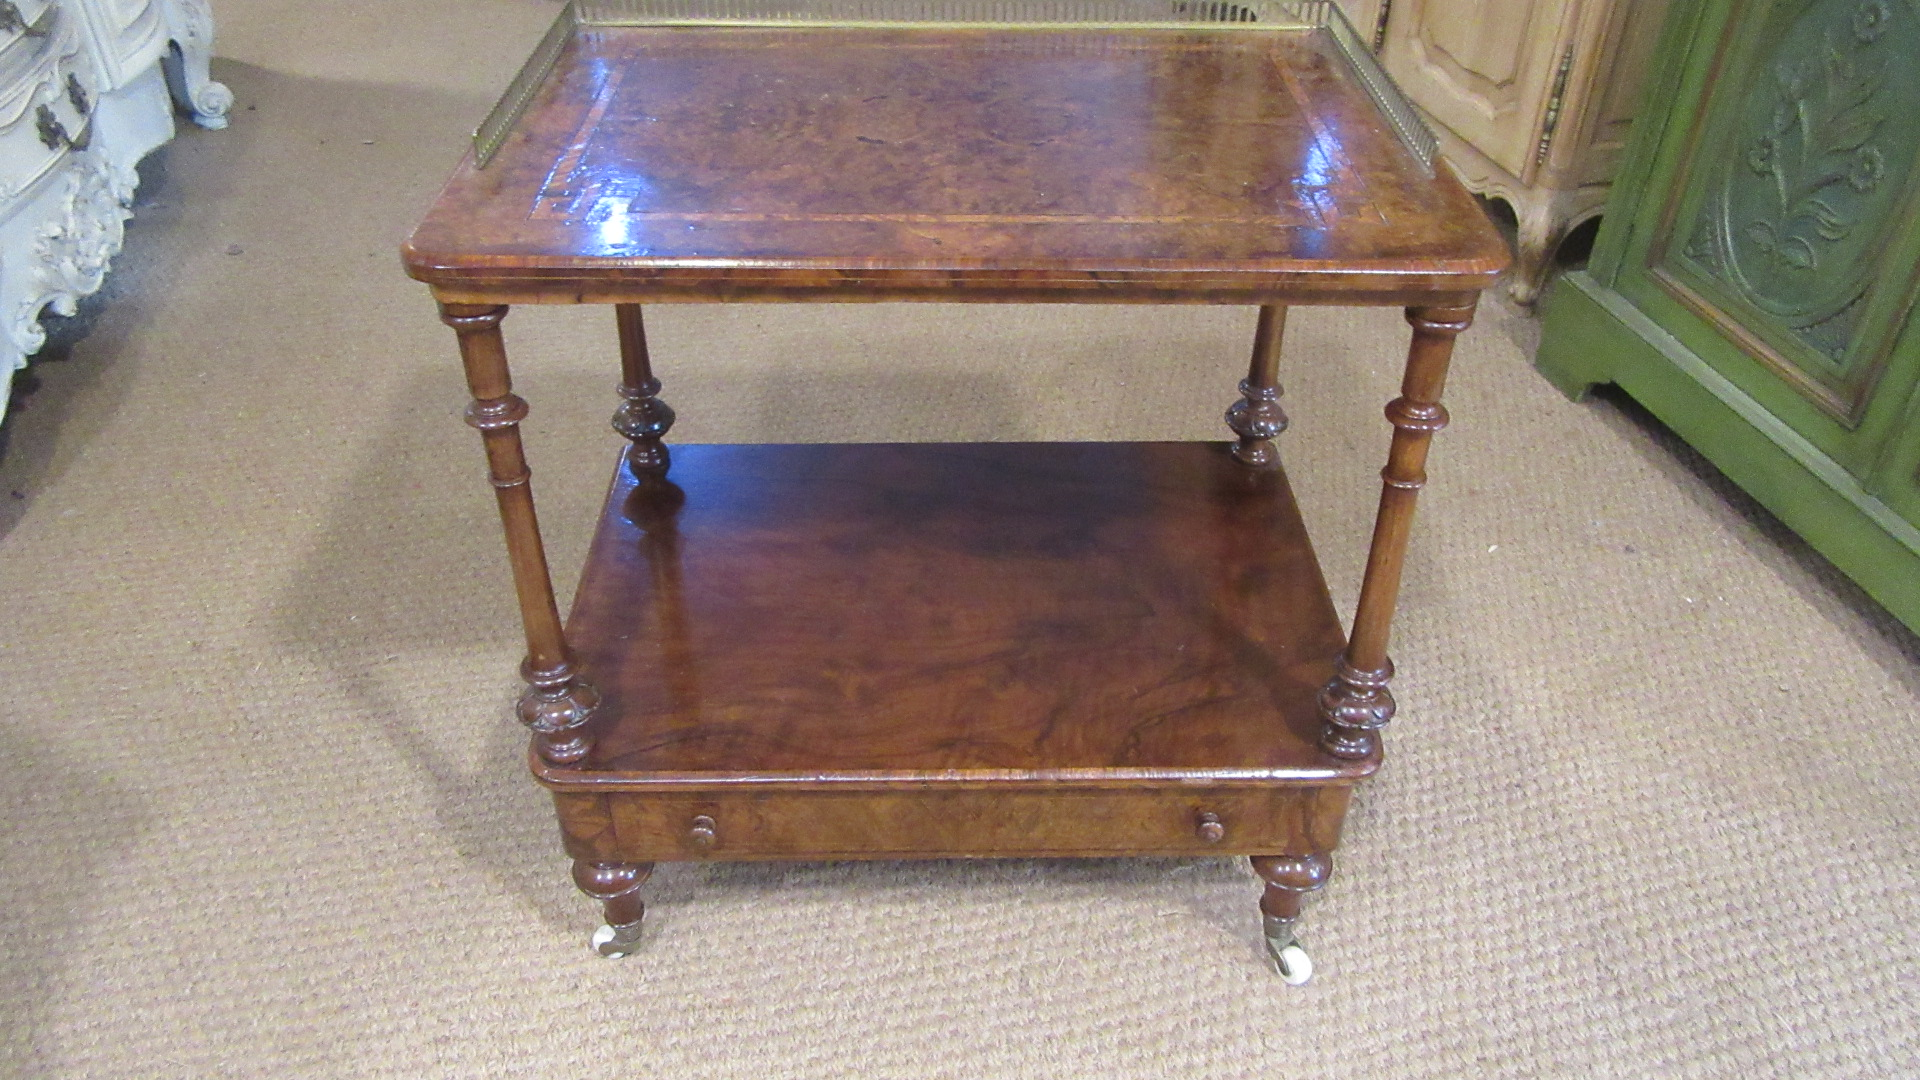 ANTIQUE VICTORIAN INLAID WALNUT TWO TIER WHATNOT